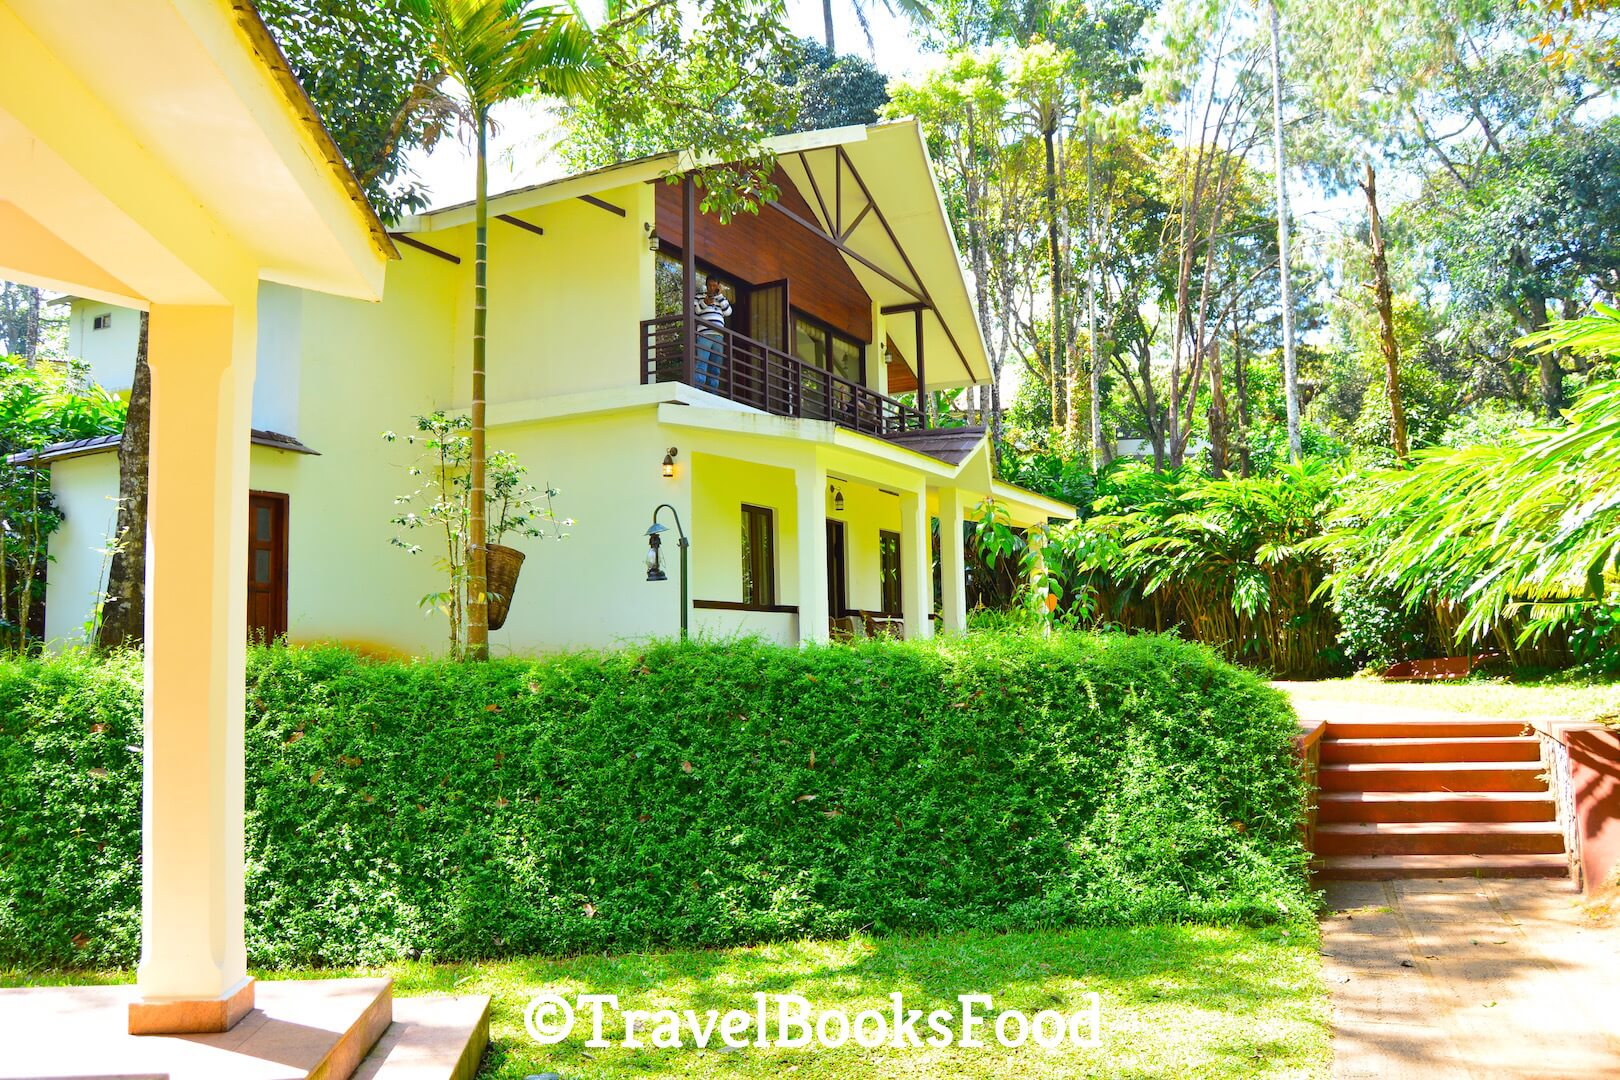 Photo of a luxury villa surrounded by trees in Carmelia Haven Resort, Thekkady, Kerala, India